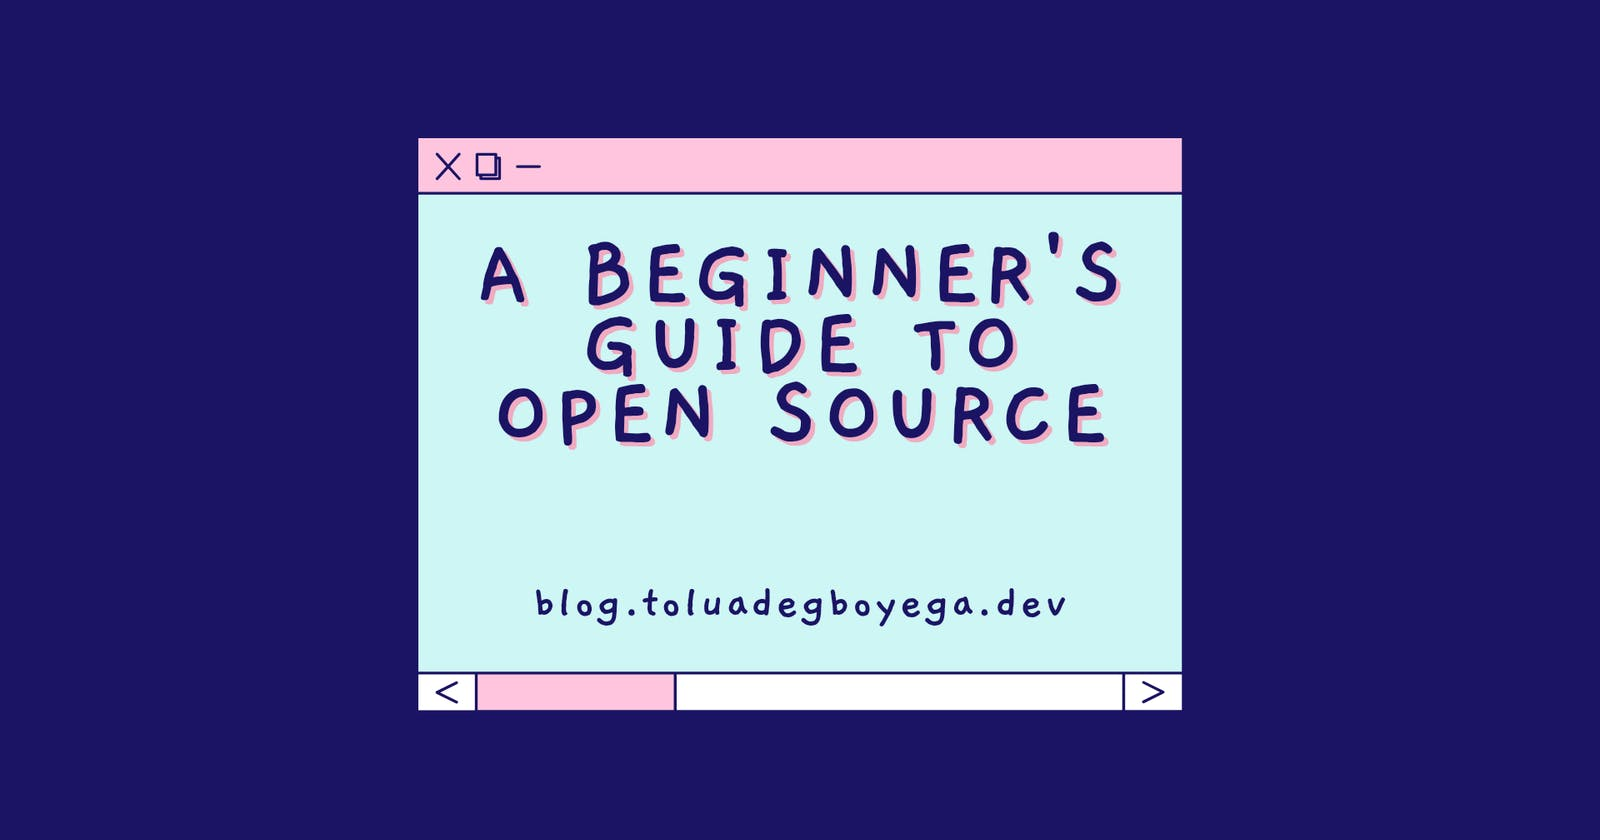 A Beginner's Guide to Open Source